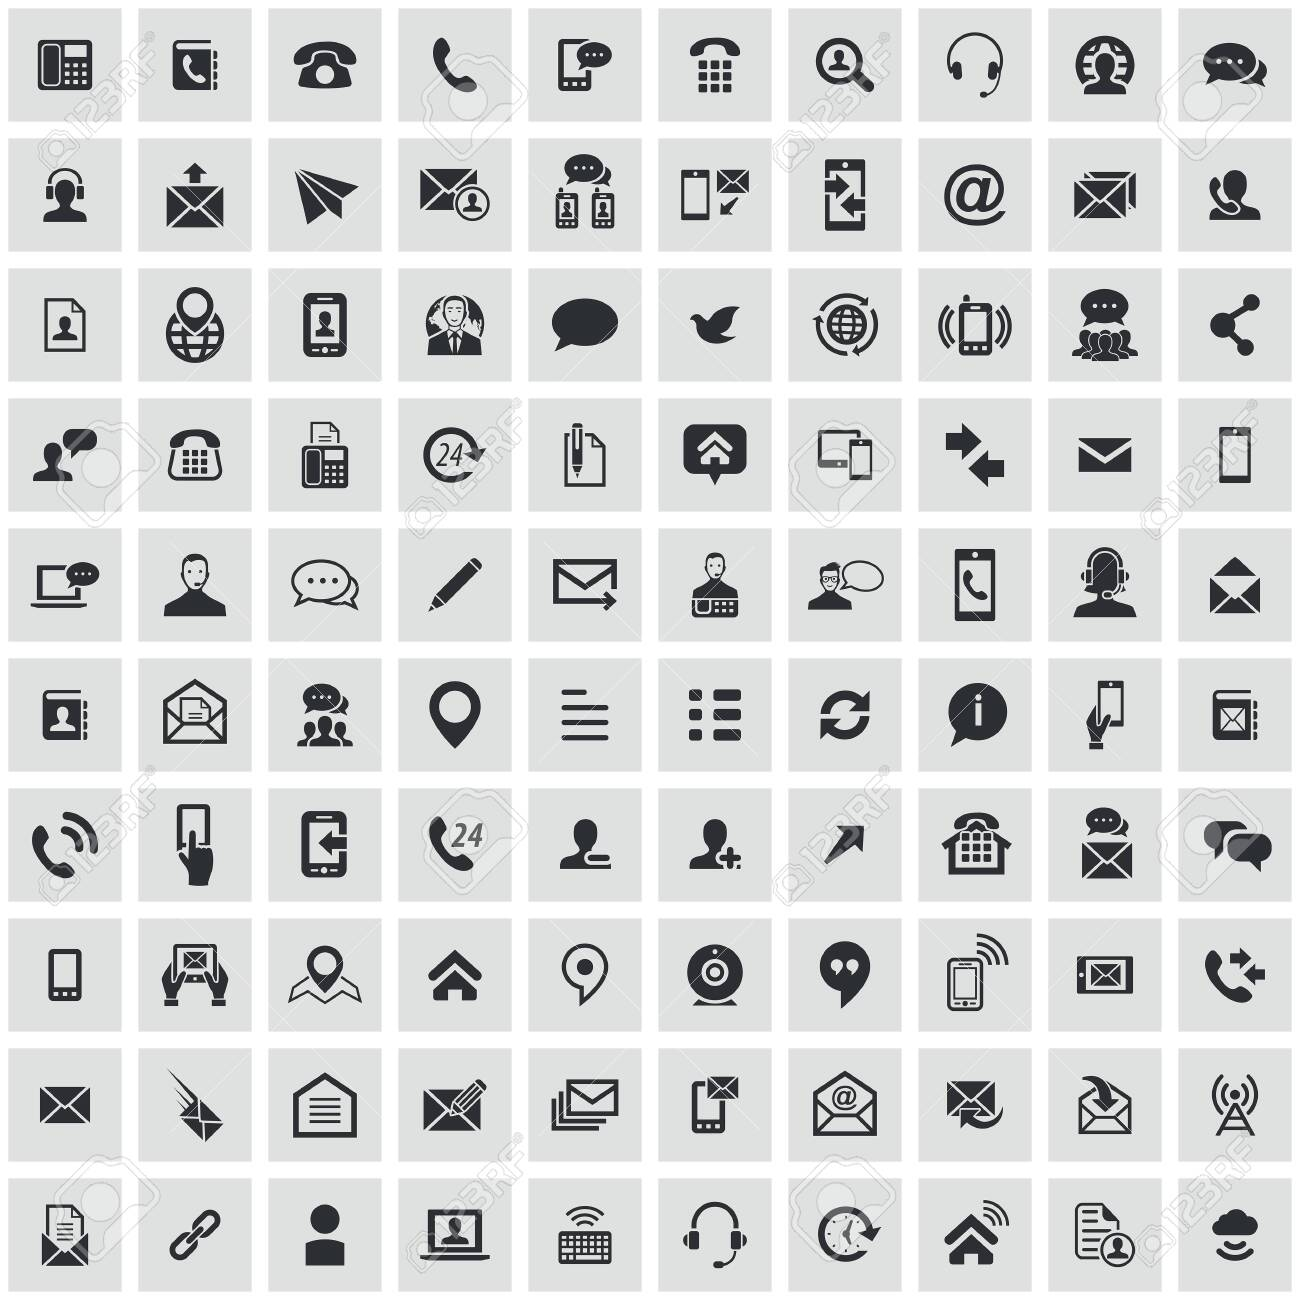 contact us 100 icons universal set for web and mobile. - 133749564